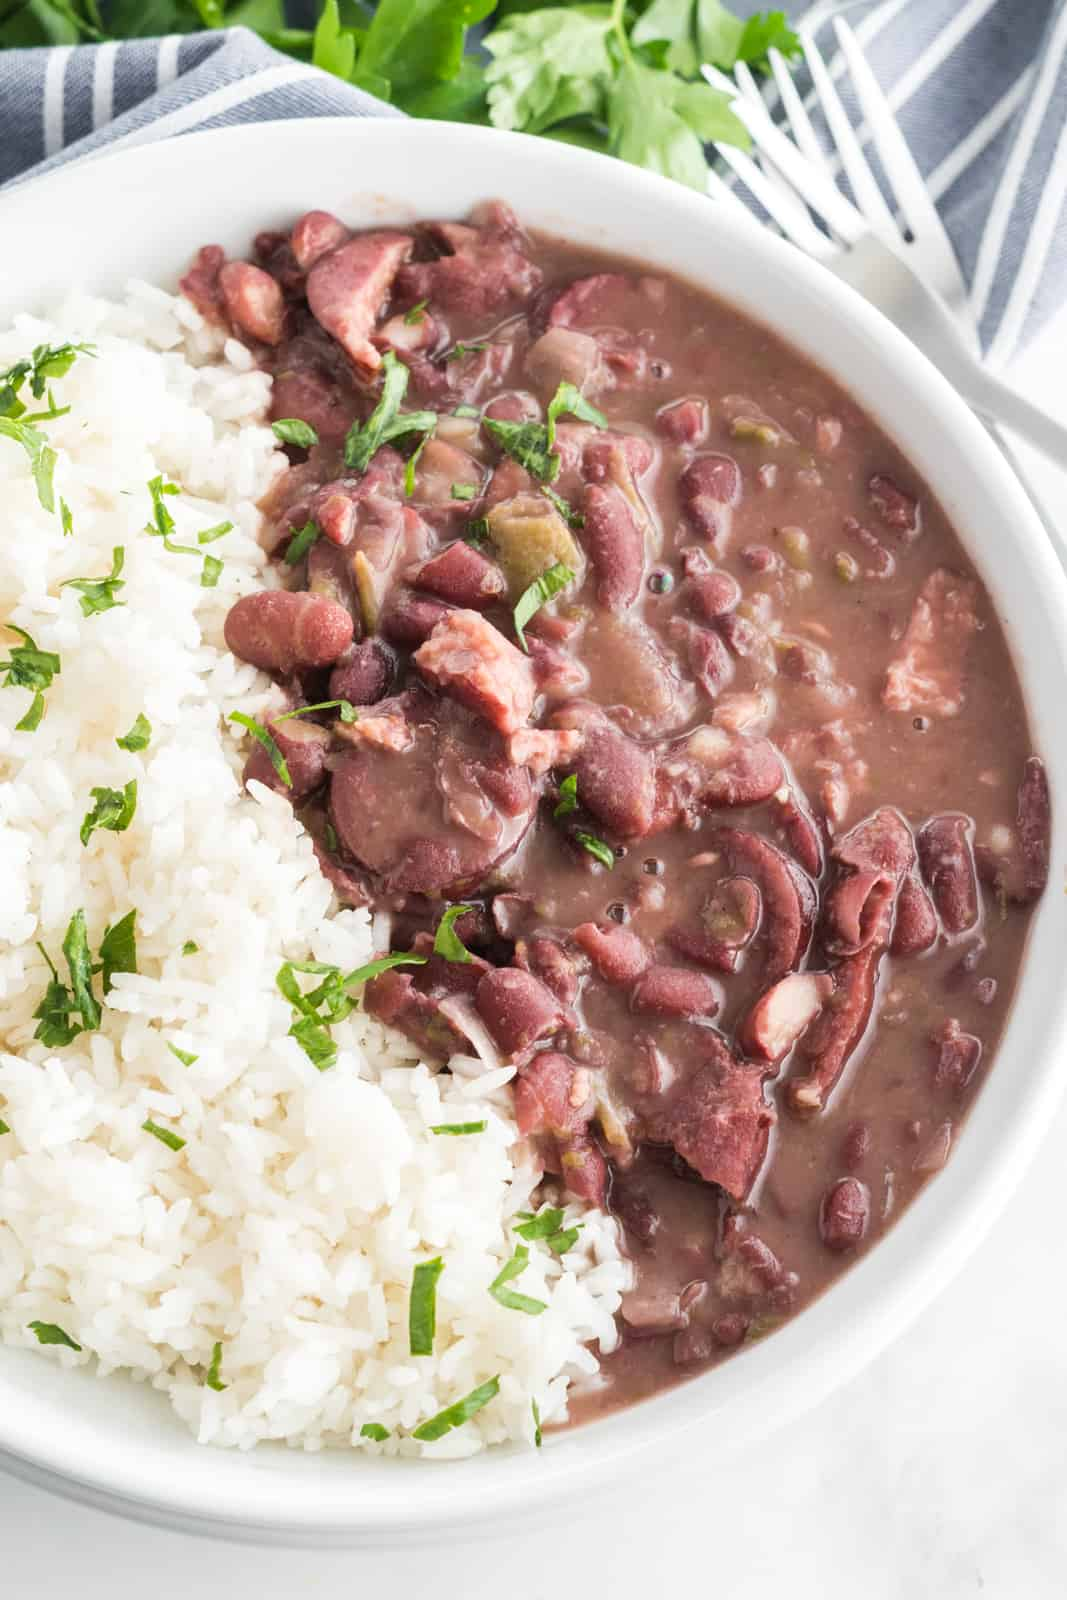 Overhead photo of red beans and rice in white bowl